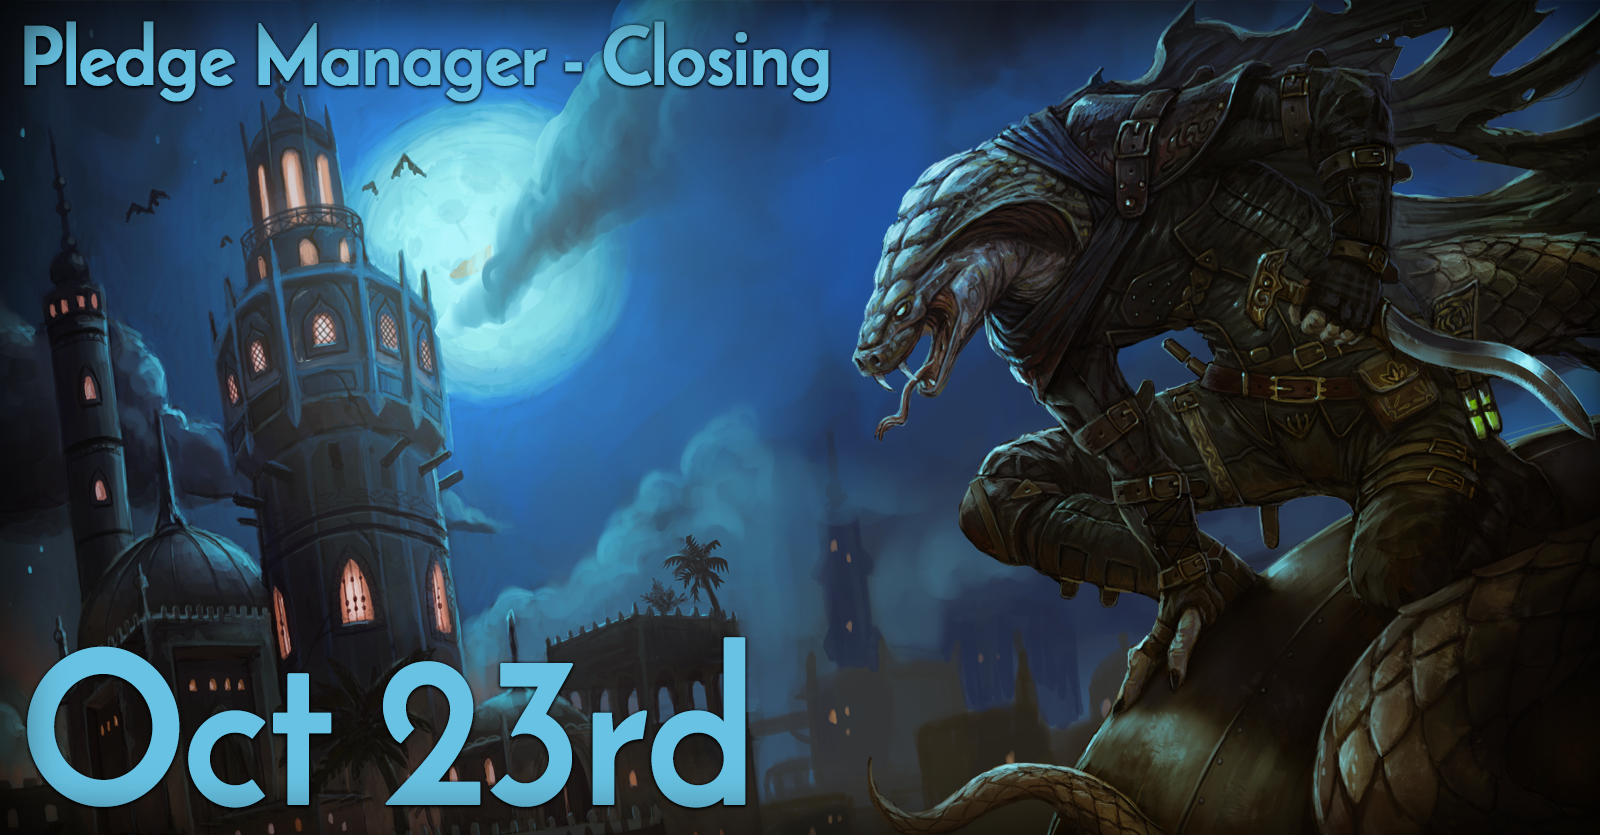 PM Closing Notice3